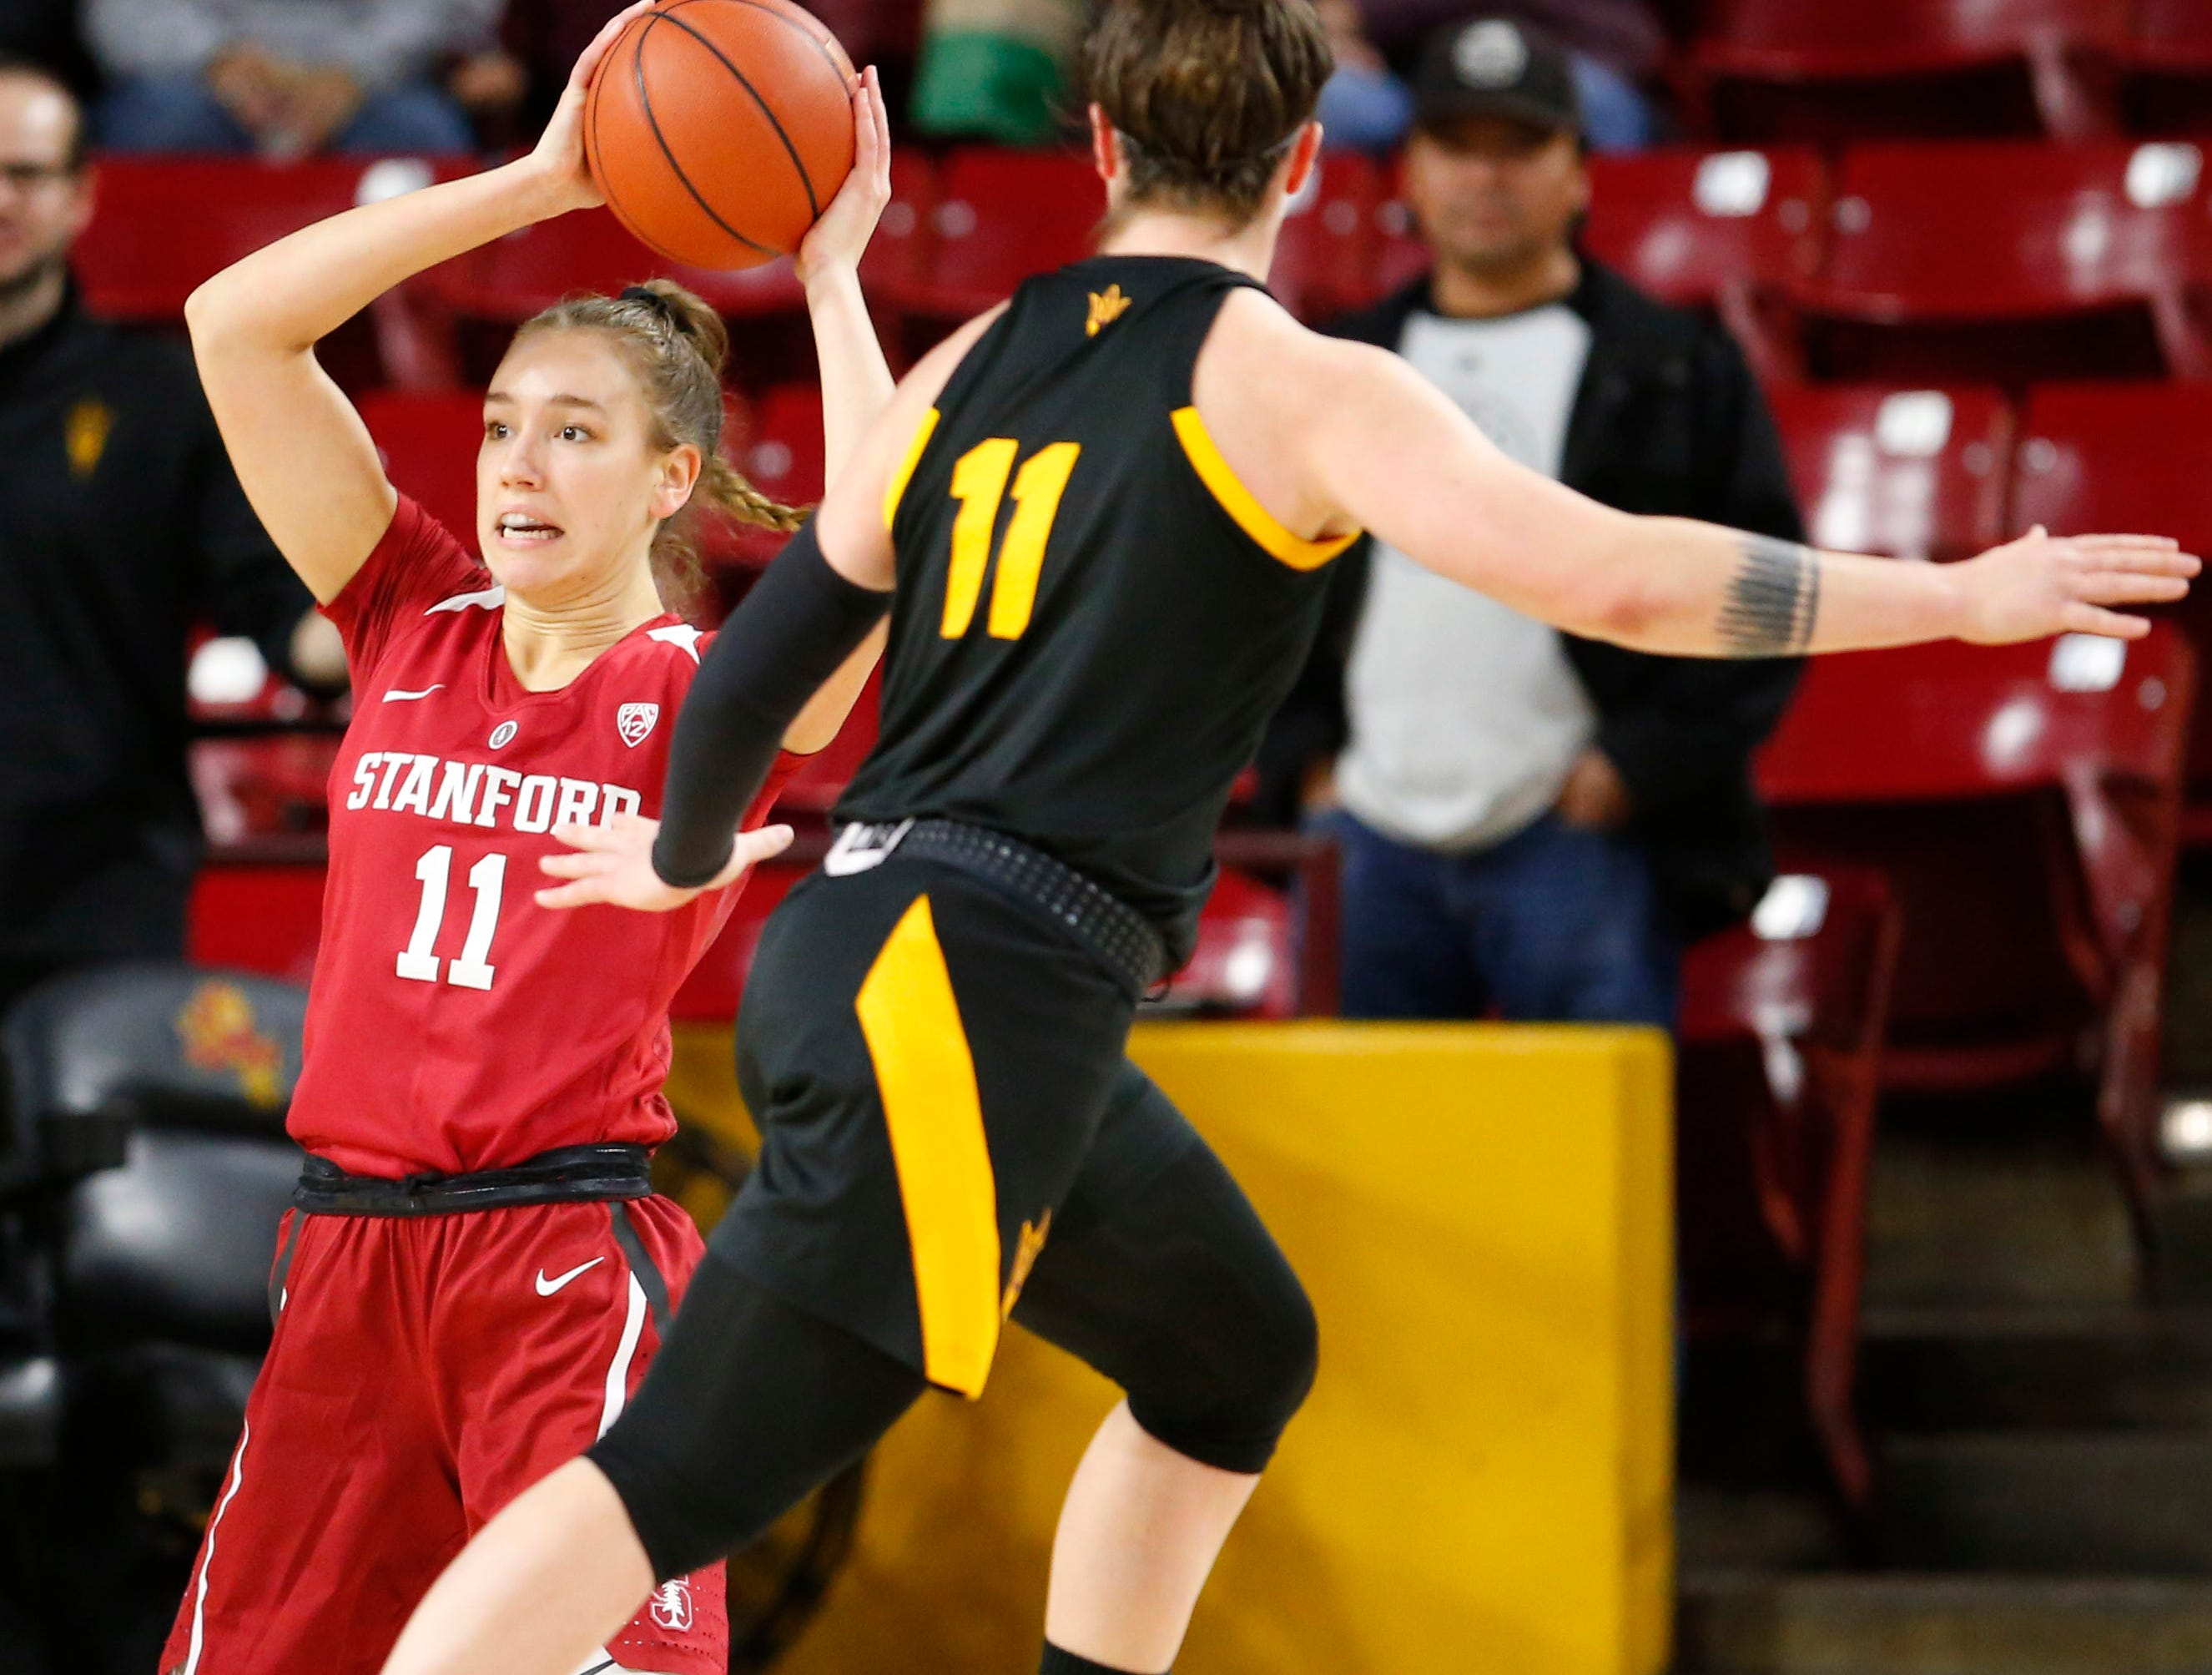 Stanford University Alanna Smith (11) attempts to save the ball while being guarded by Arizona State University Robbi Ryan (11) during a women's basketball game at Well Fargo Arena in Tempe on January 11.